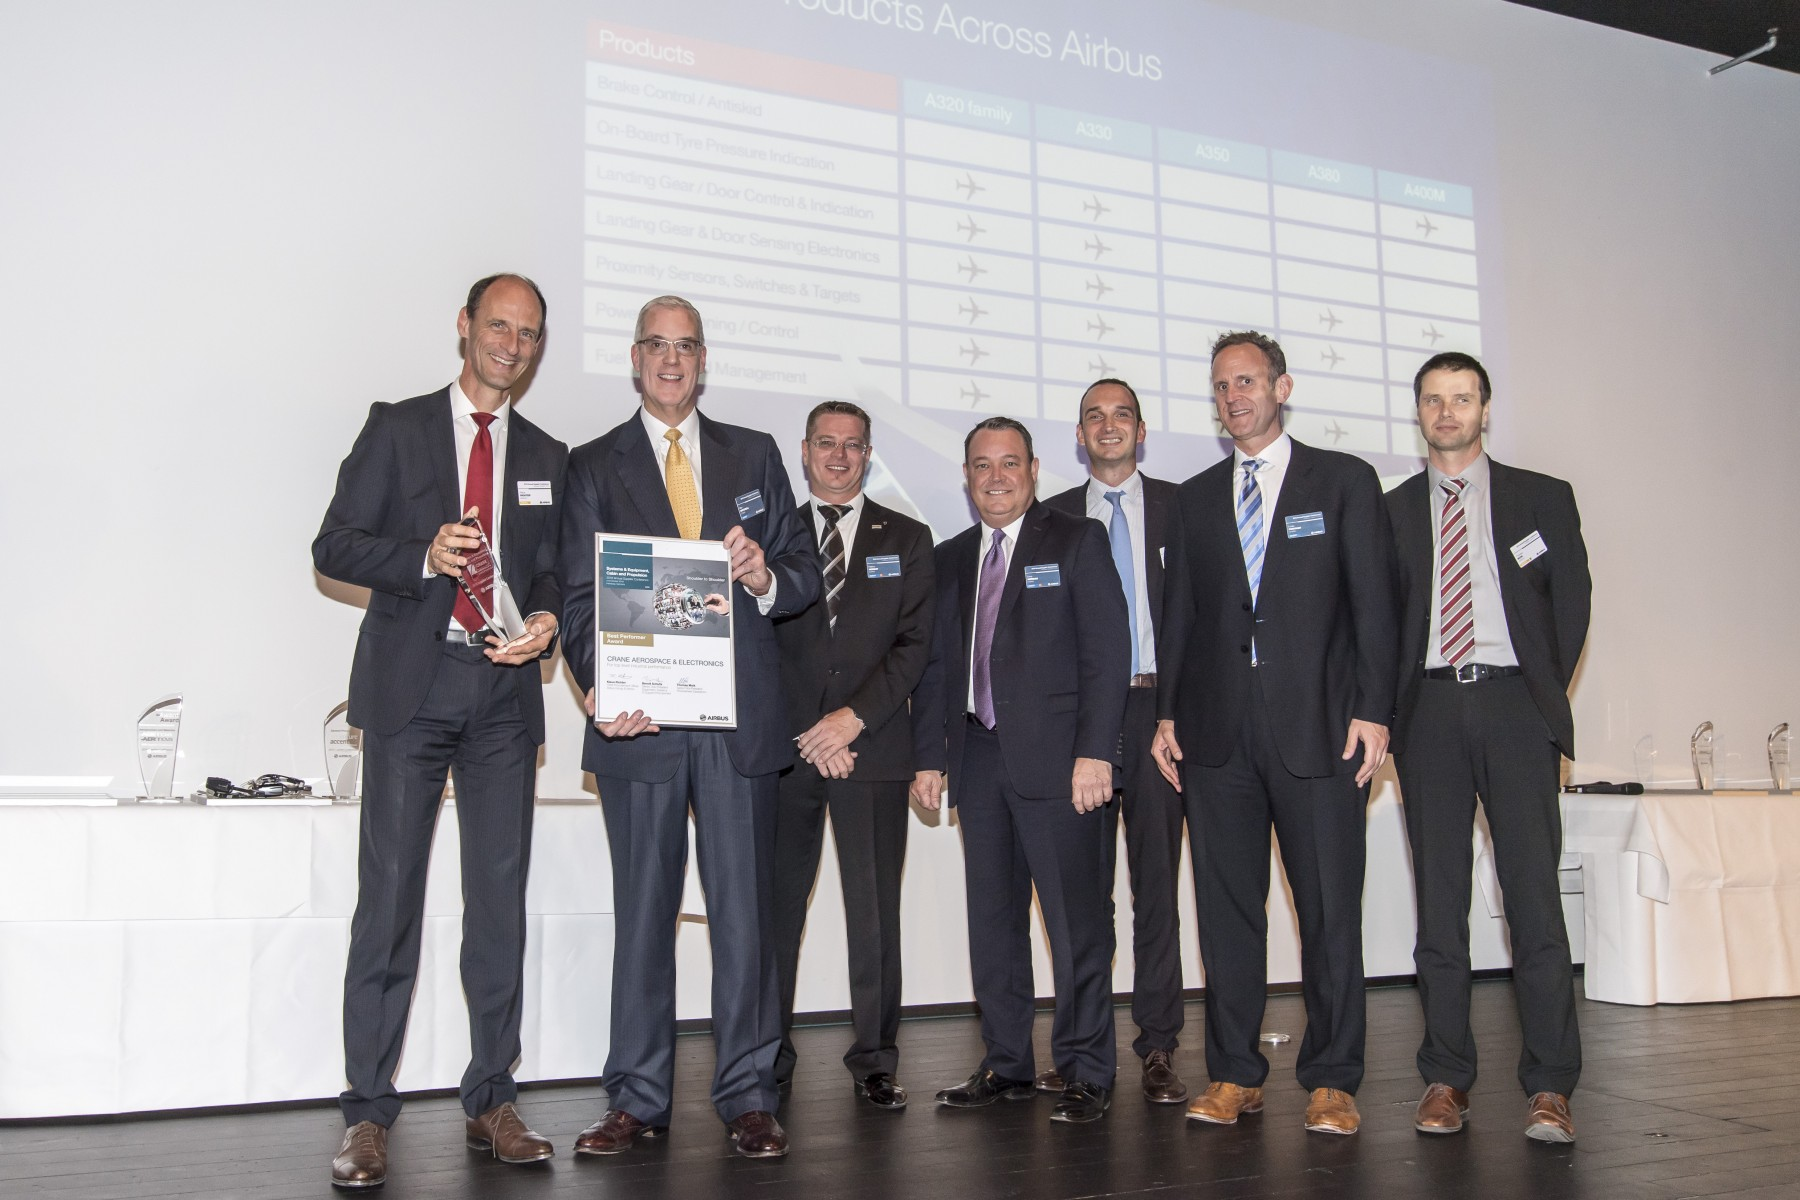 Crane receives a Best Performer Award from Airbus at the 2016 Airbus Supplier Conference in Hamburg, Germany on October 5, 2016